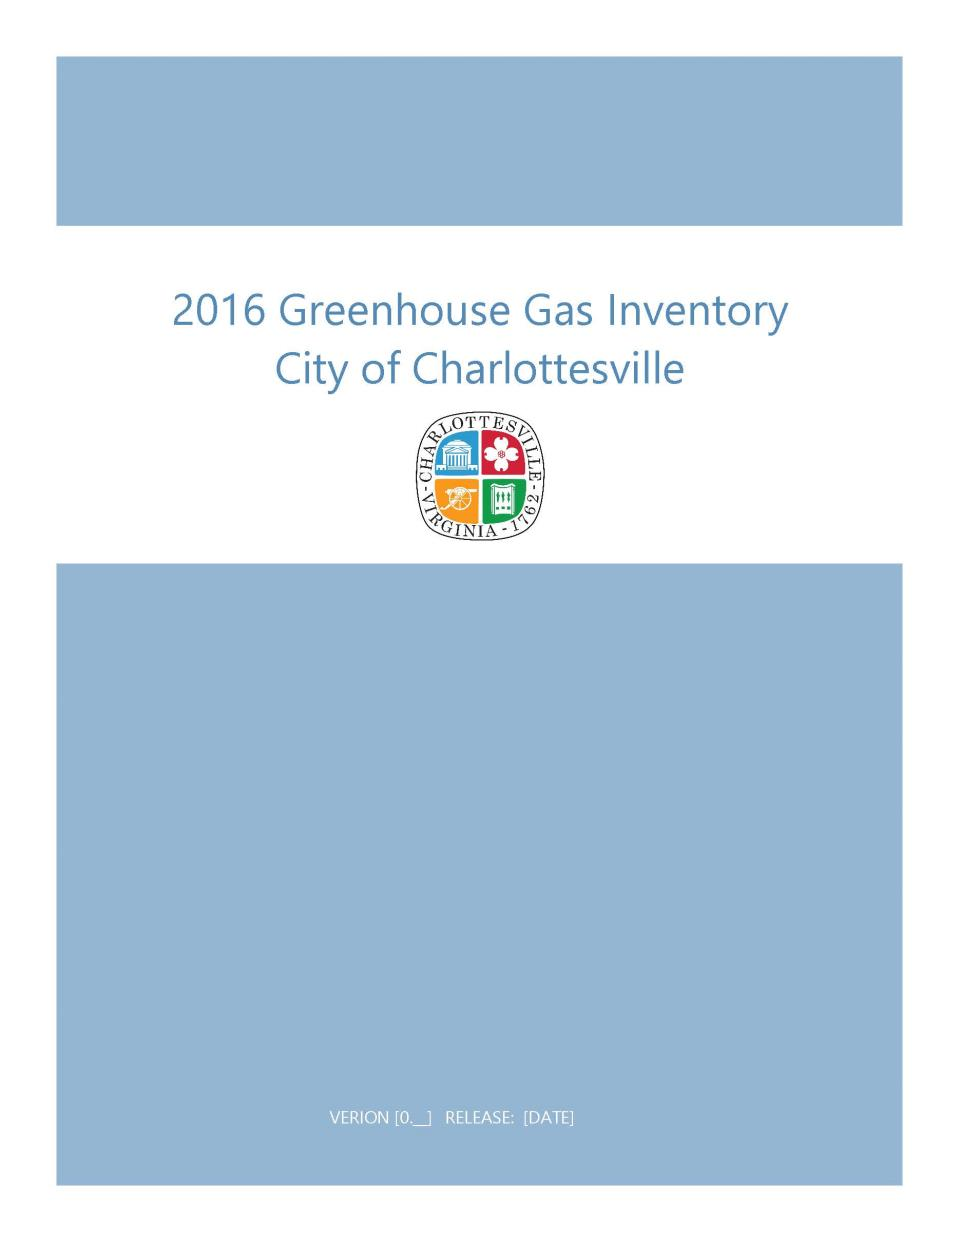 2016 GHG Inventory - Report Cover (.jpg) Opens in new window